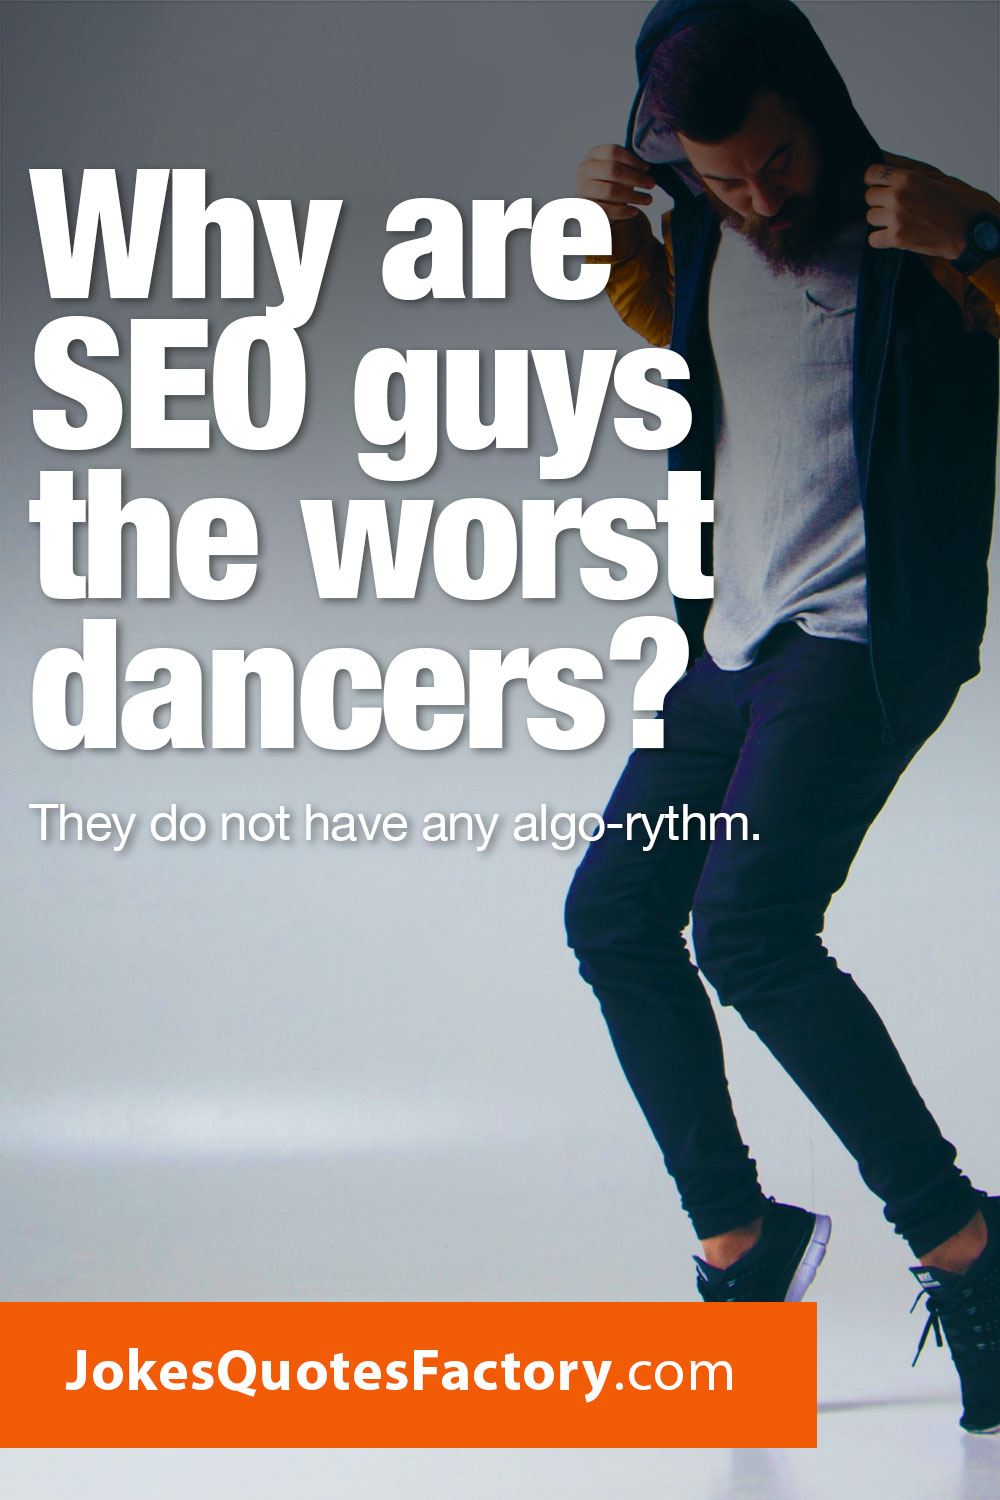 Why are SEO guys the worst dancers? They do not have any algo-rythm.